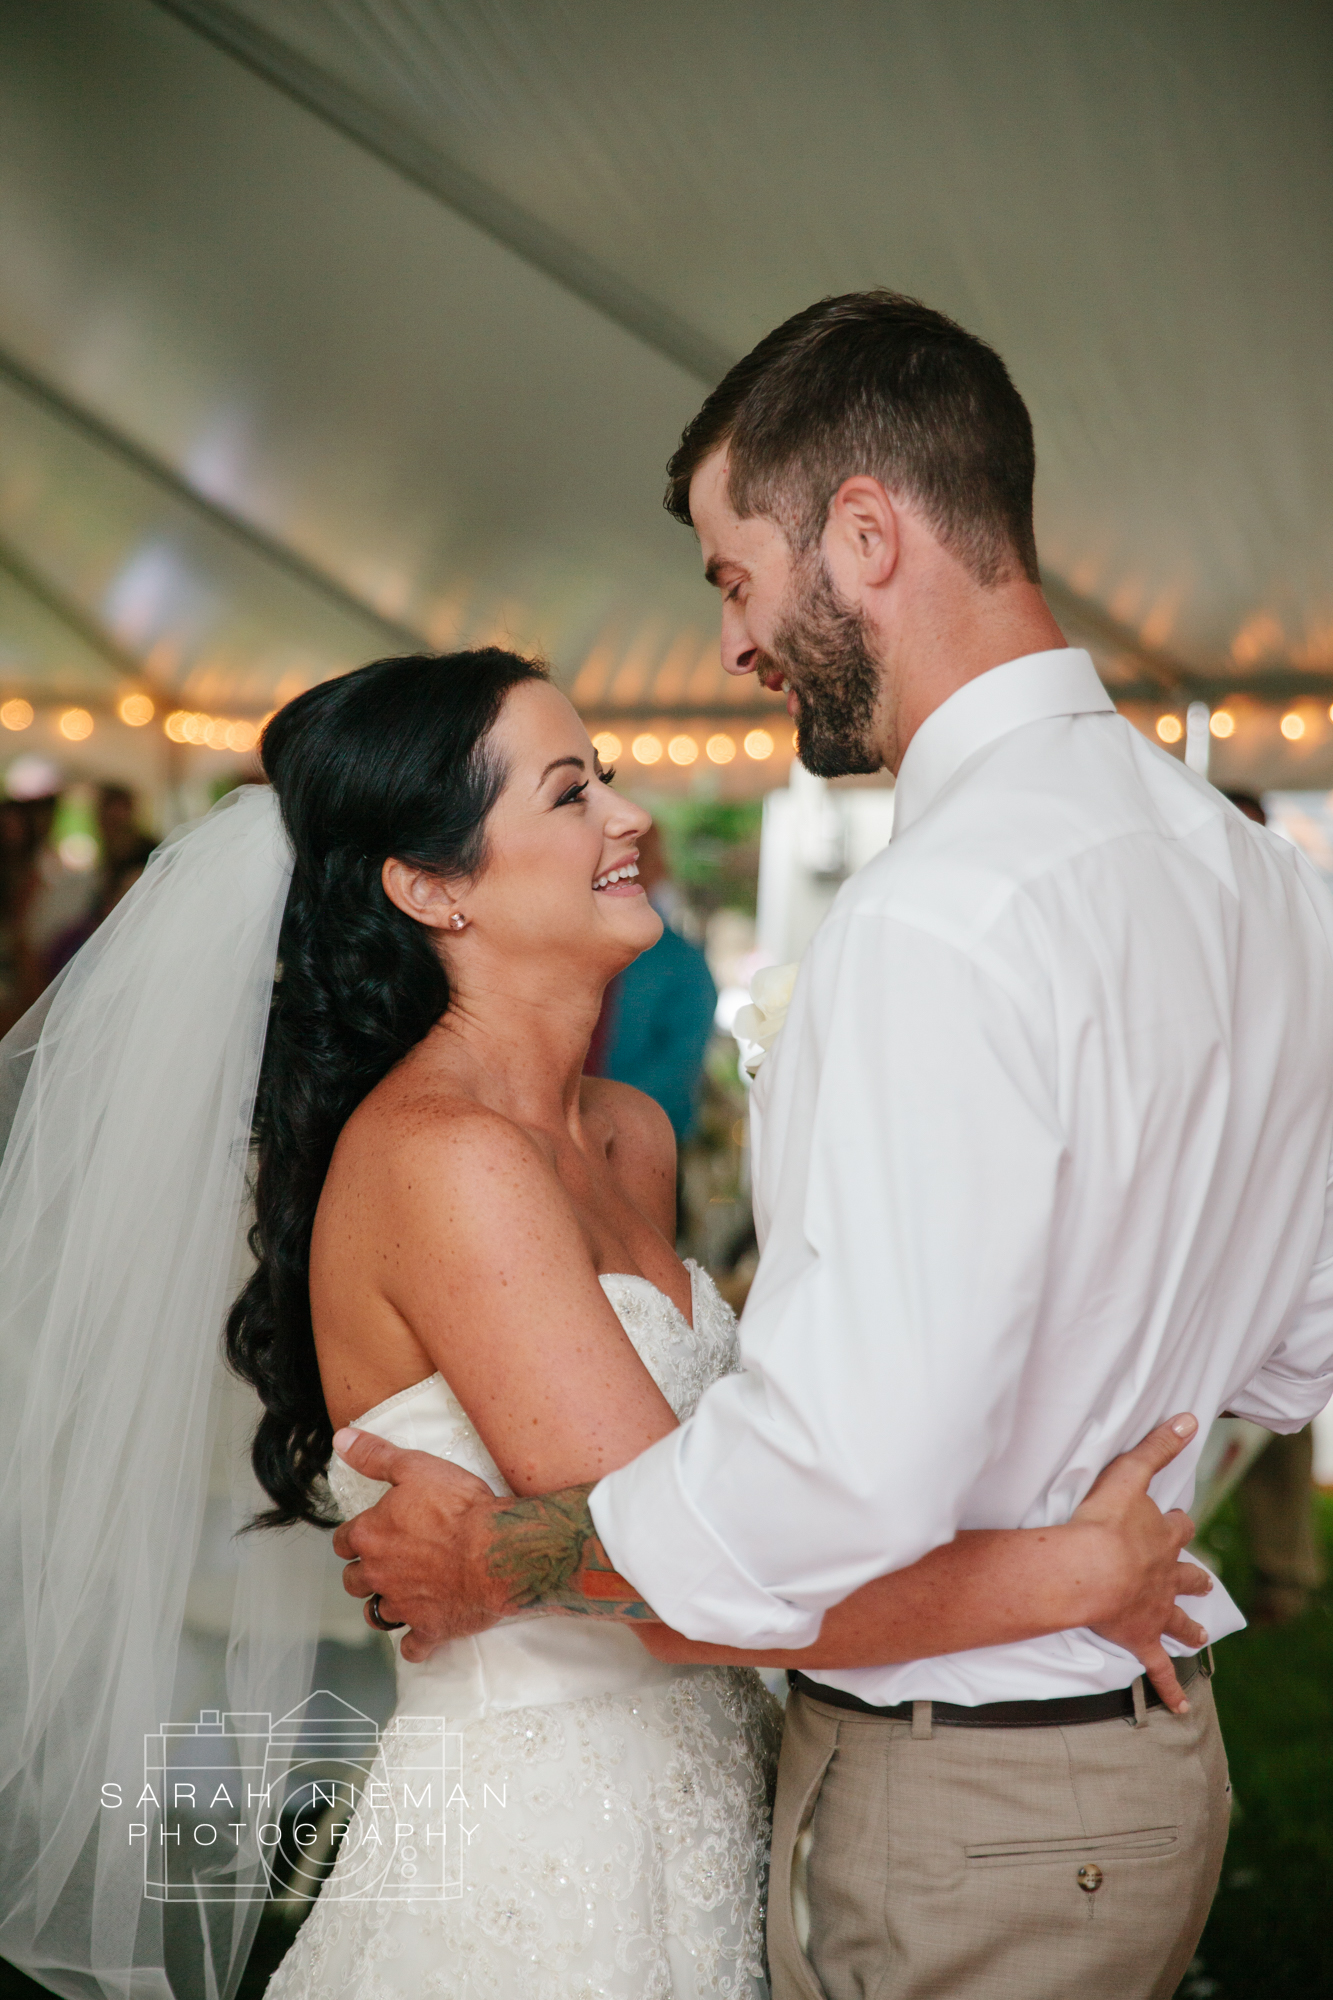 First dances are always one of my favorite parts of a wedding day.